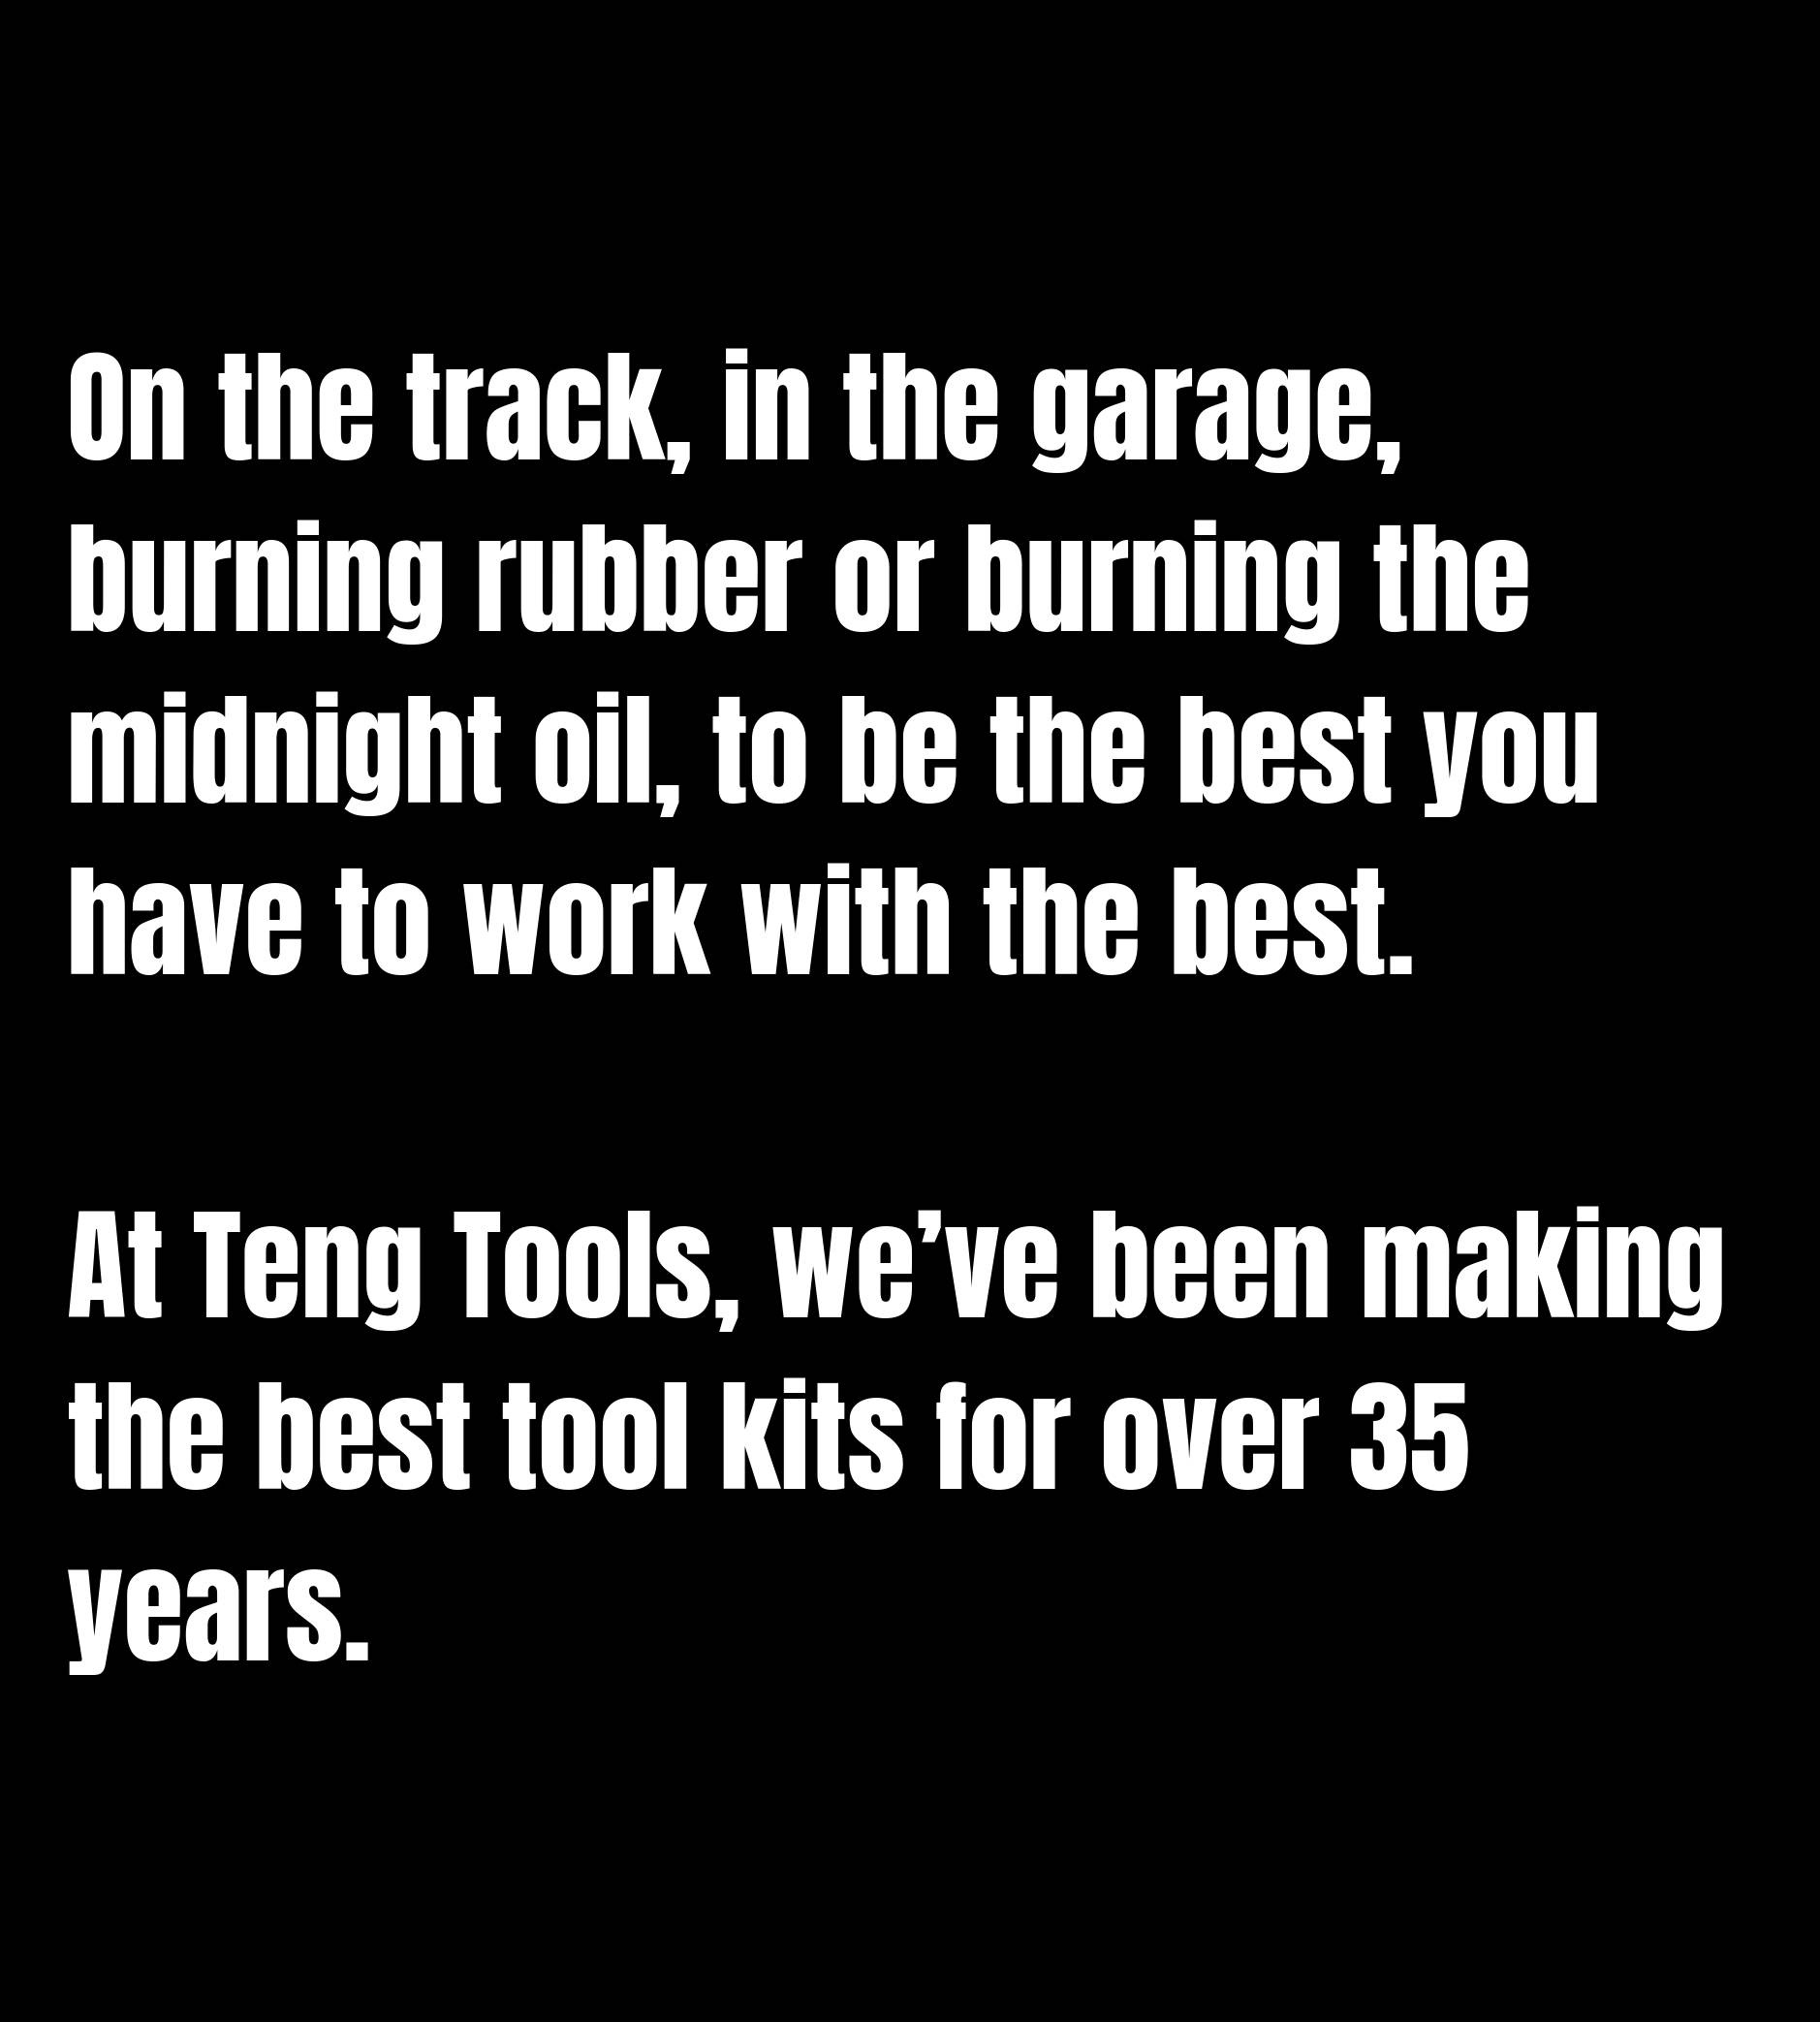 On the track, in the garage, burning rubber or burning the midnight oil, to be the best you have to work with the best.  At Teng Tools, we've been making the best tool kits for over 35 years.